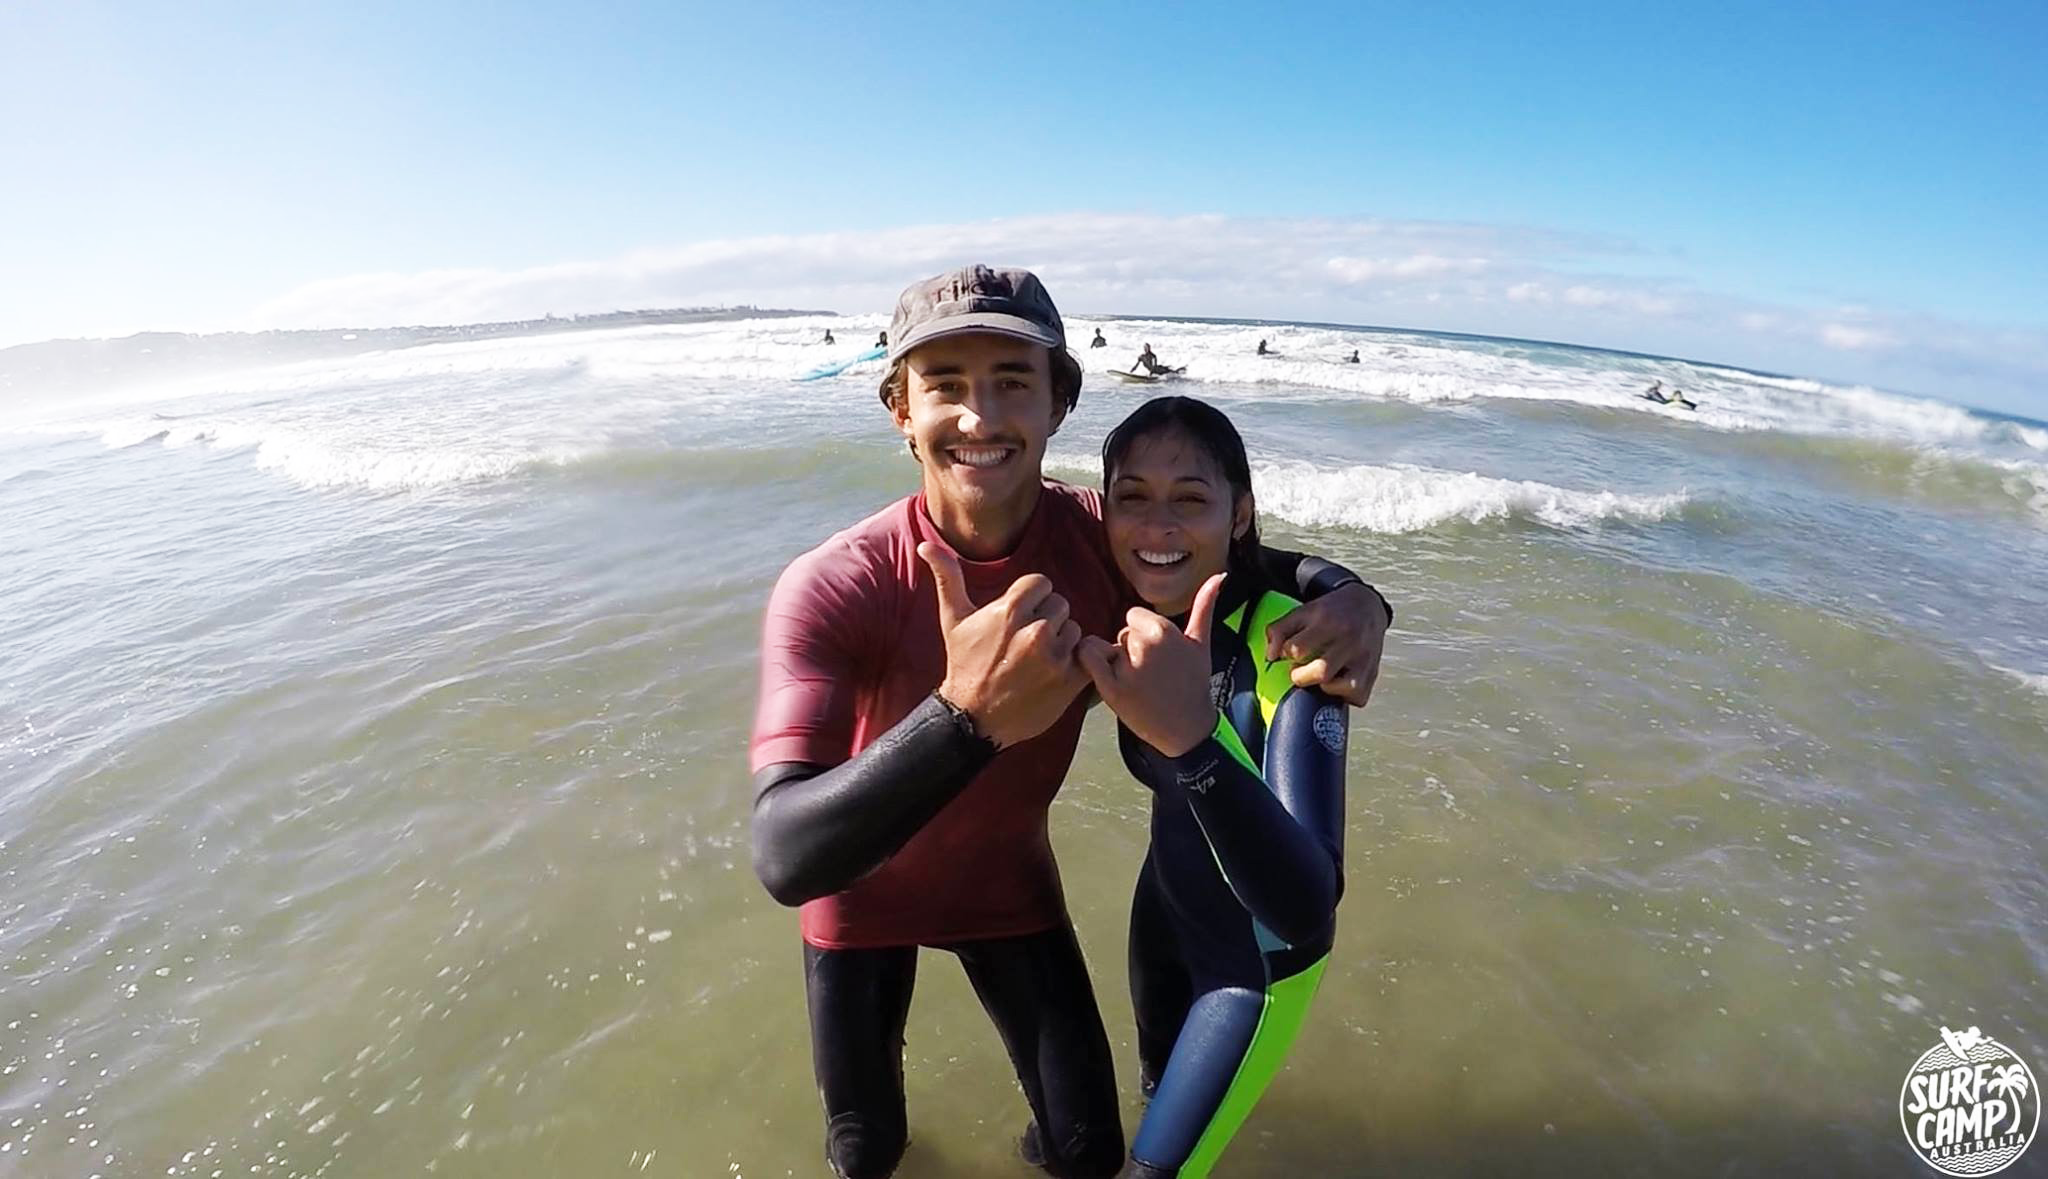 The instructors at Surf Camp Australia are awesome!